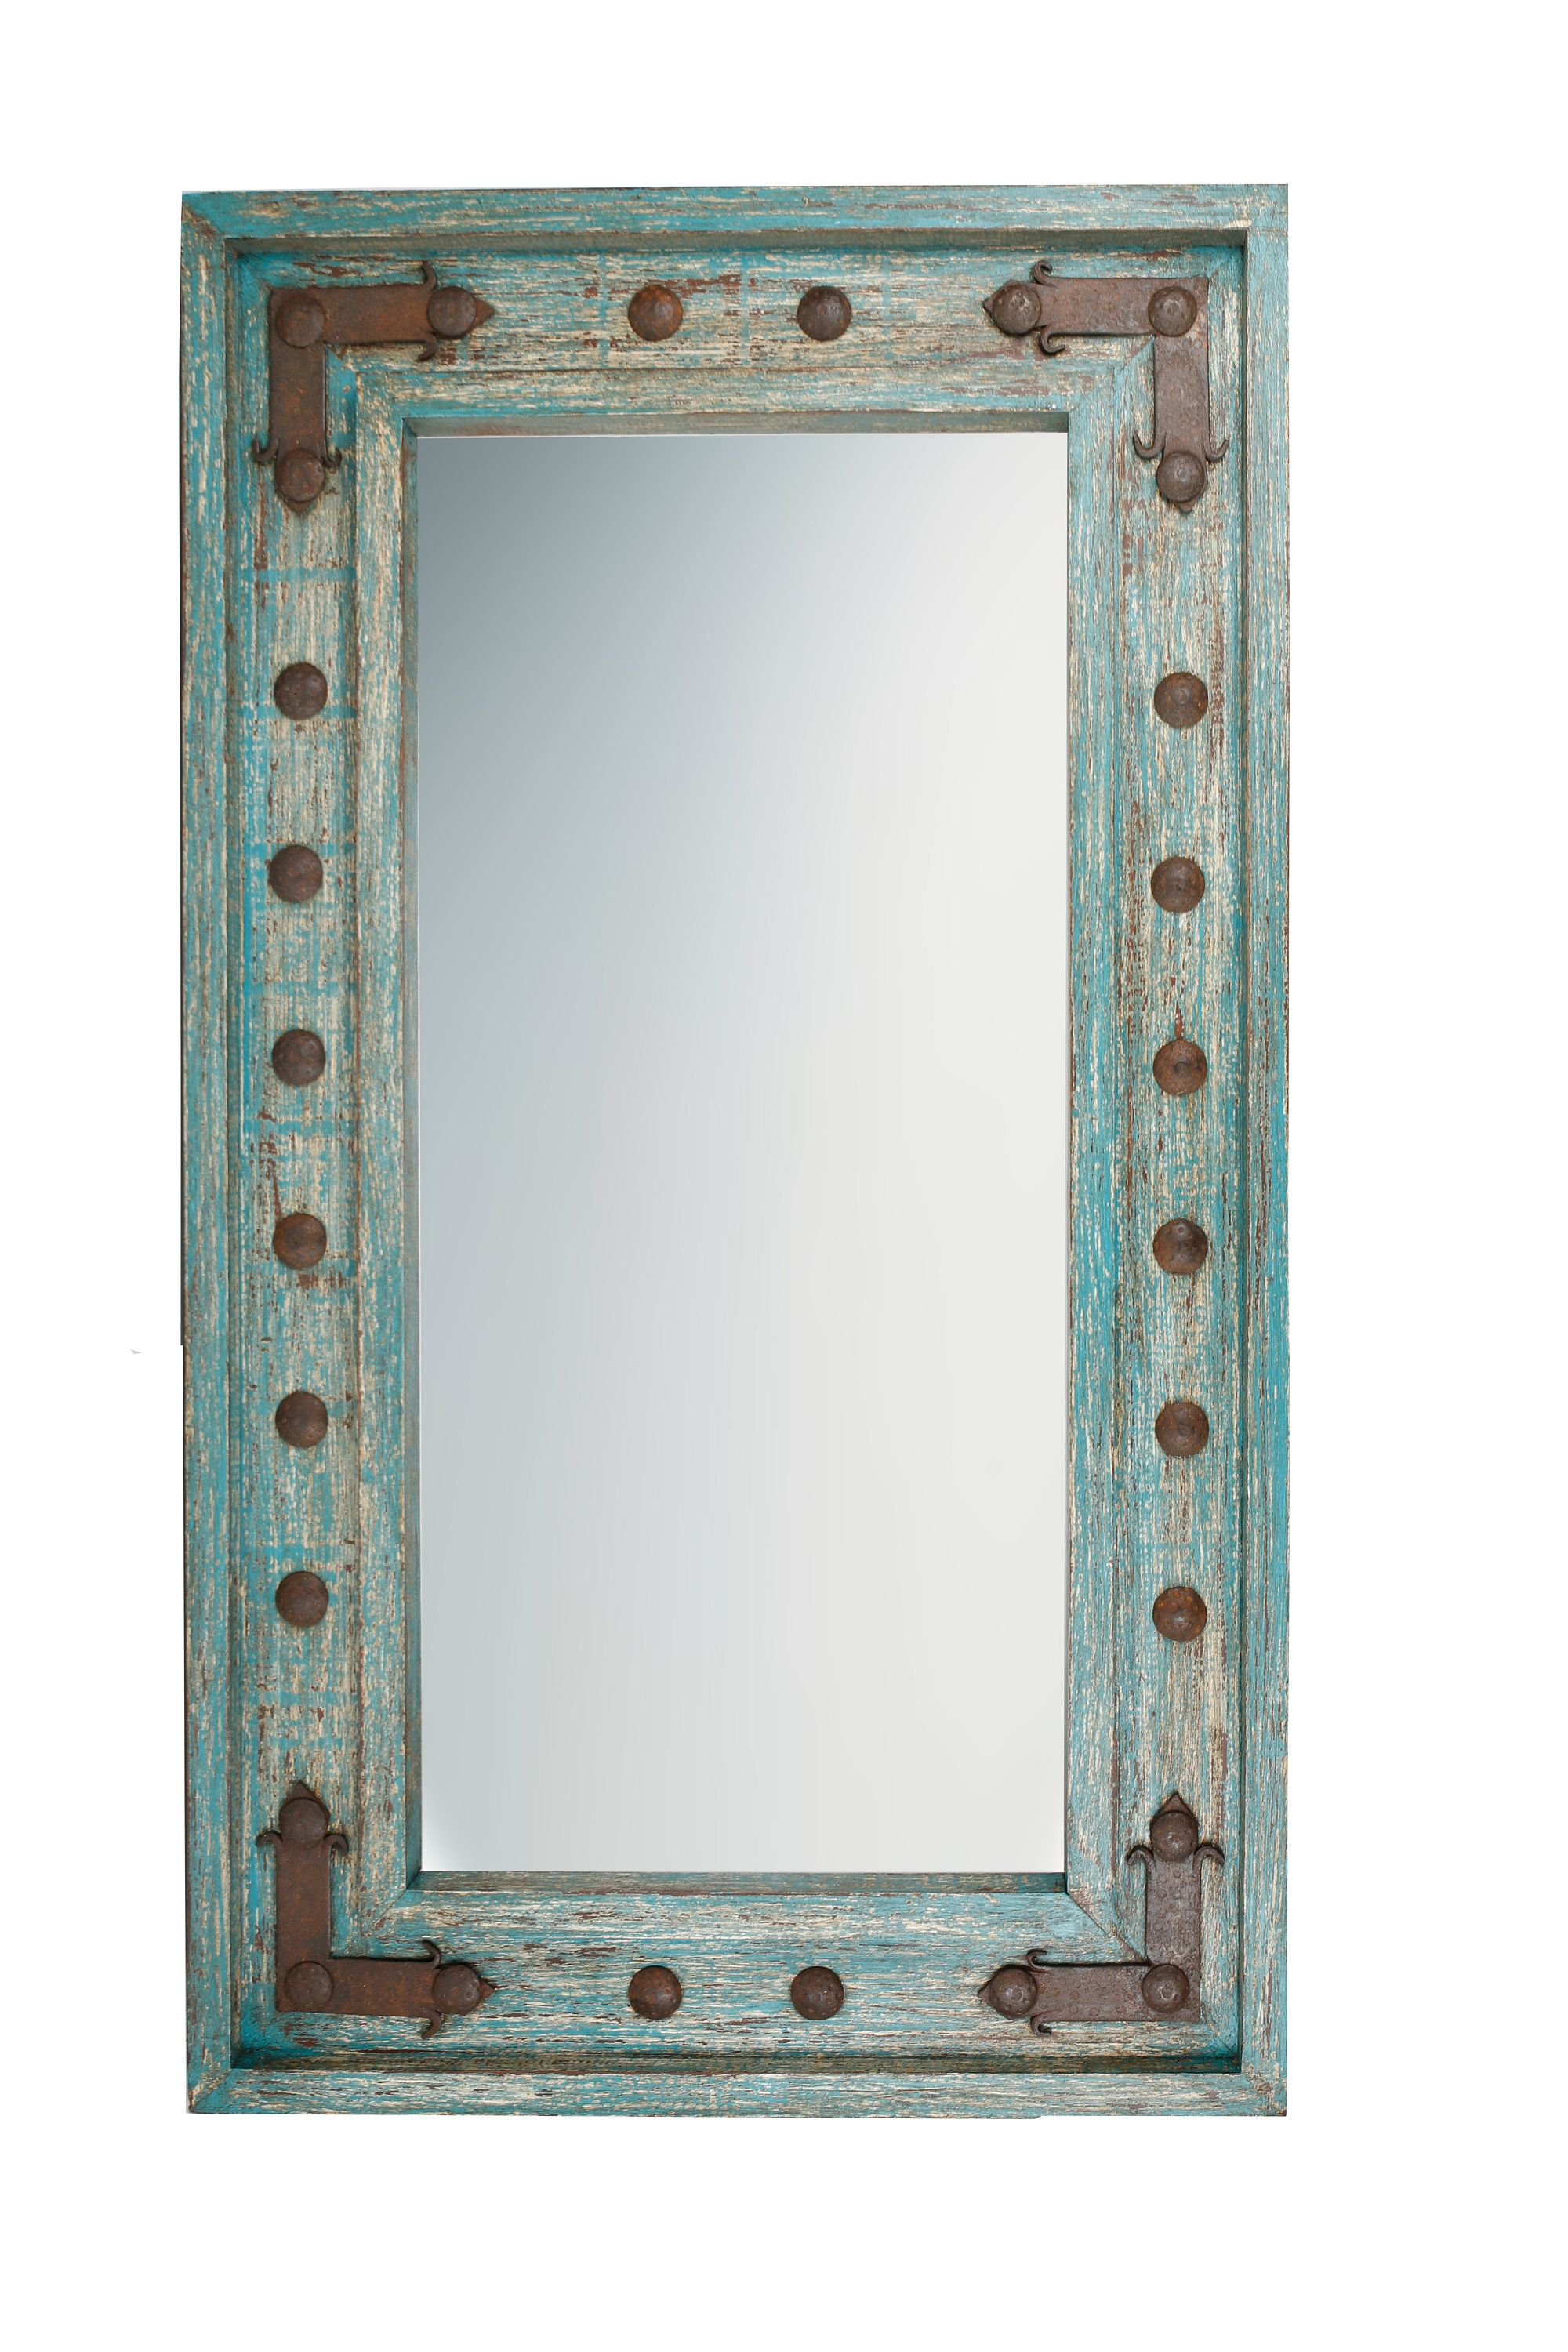 Soluna Rustic Etsy In 2021 Rustic Mirrors Rustic Wood Walls Turquoise Living Room Decor